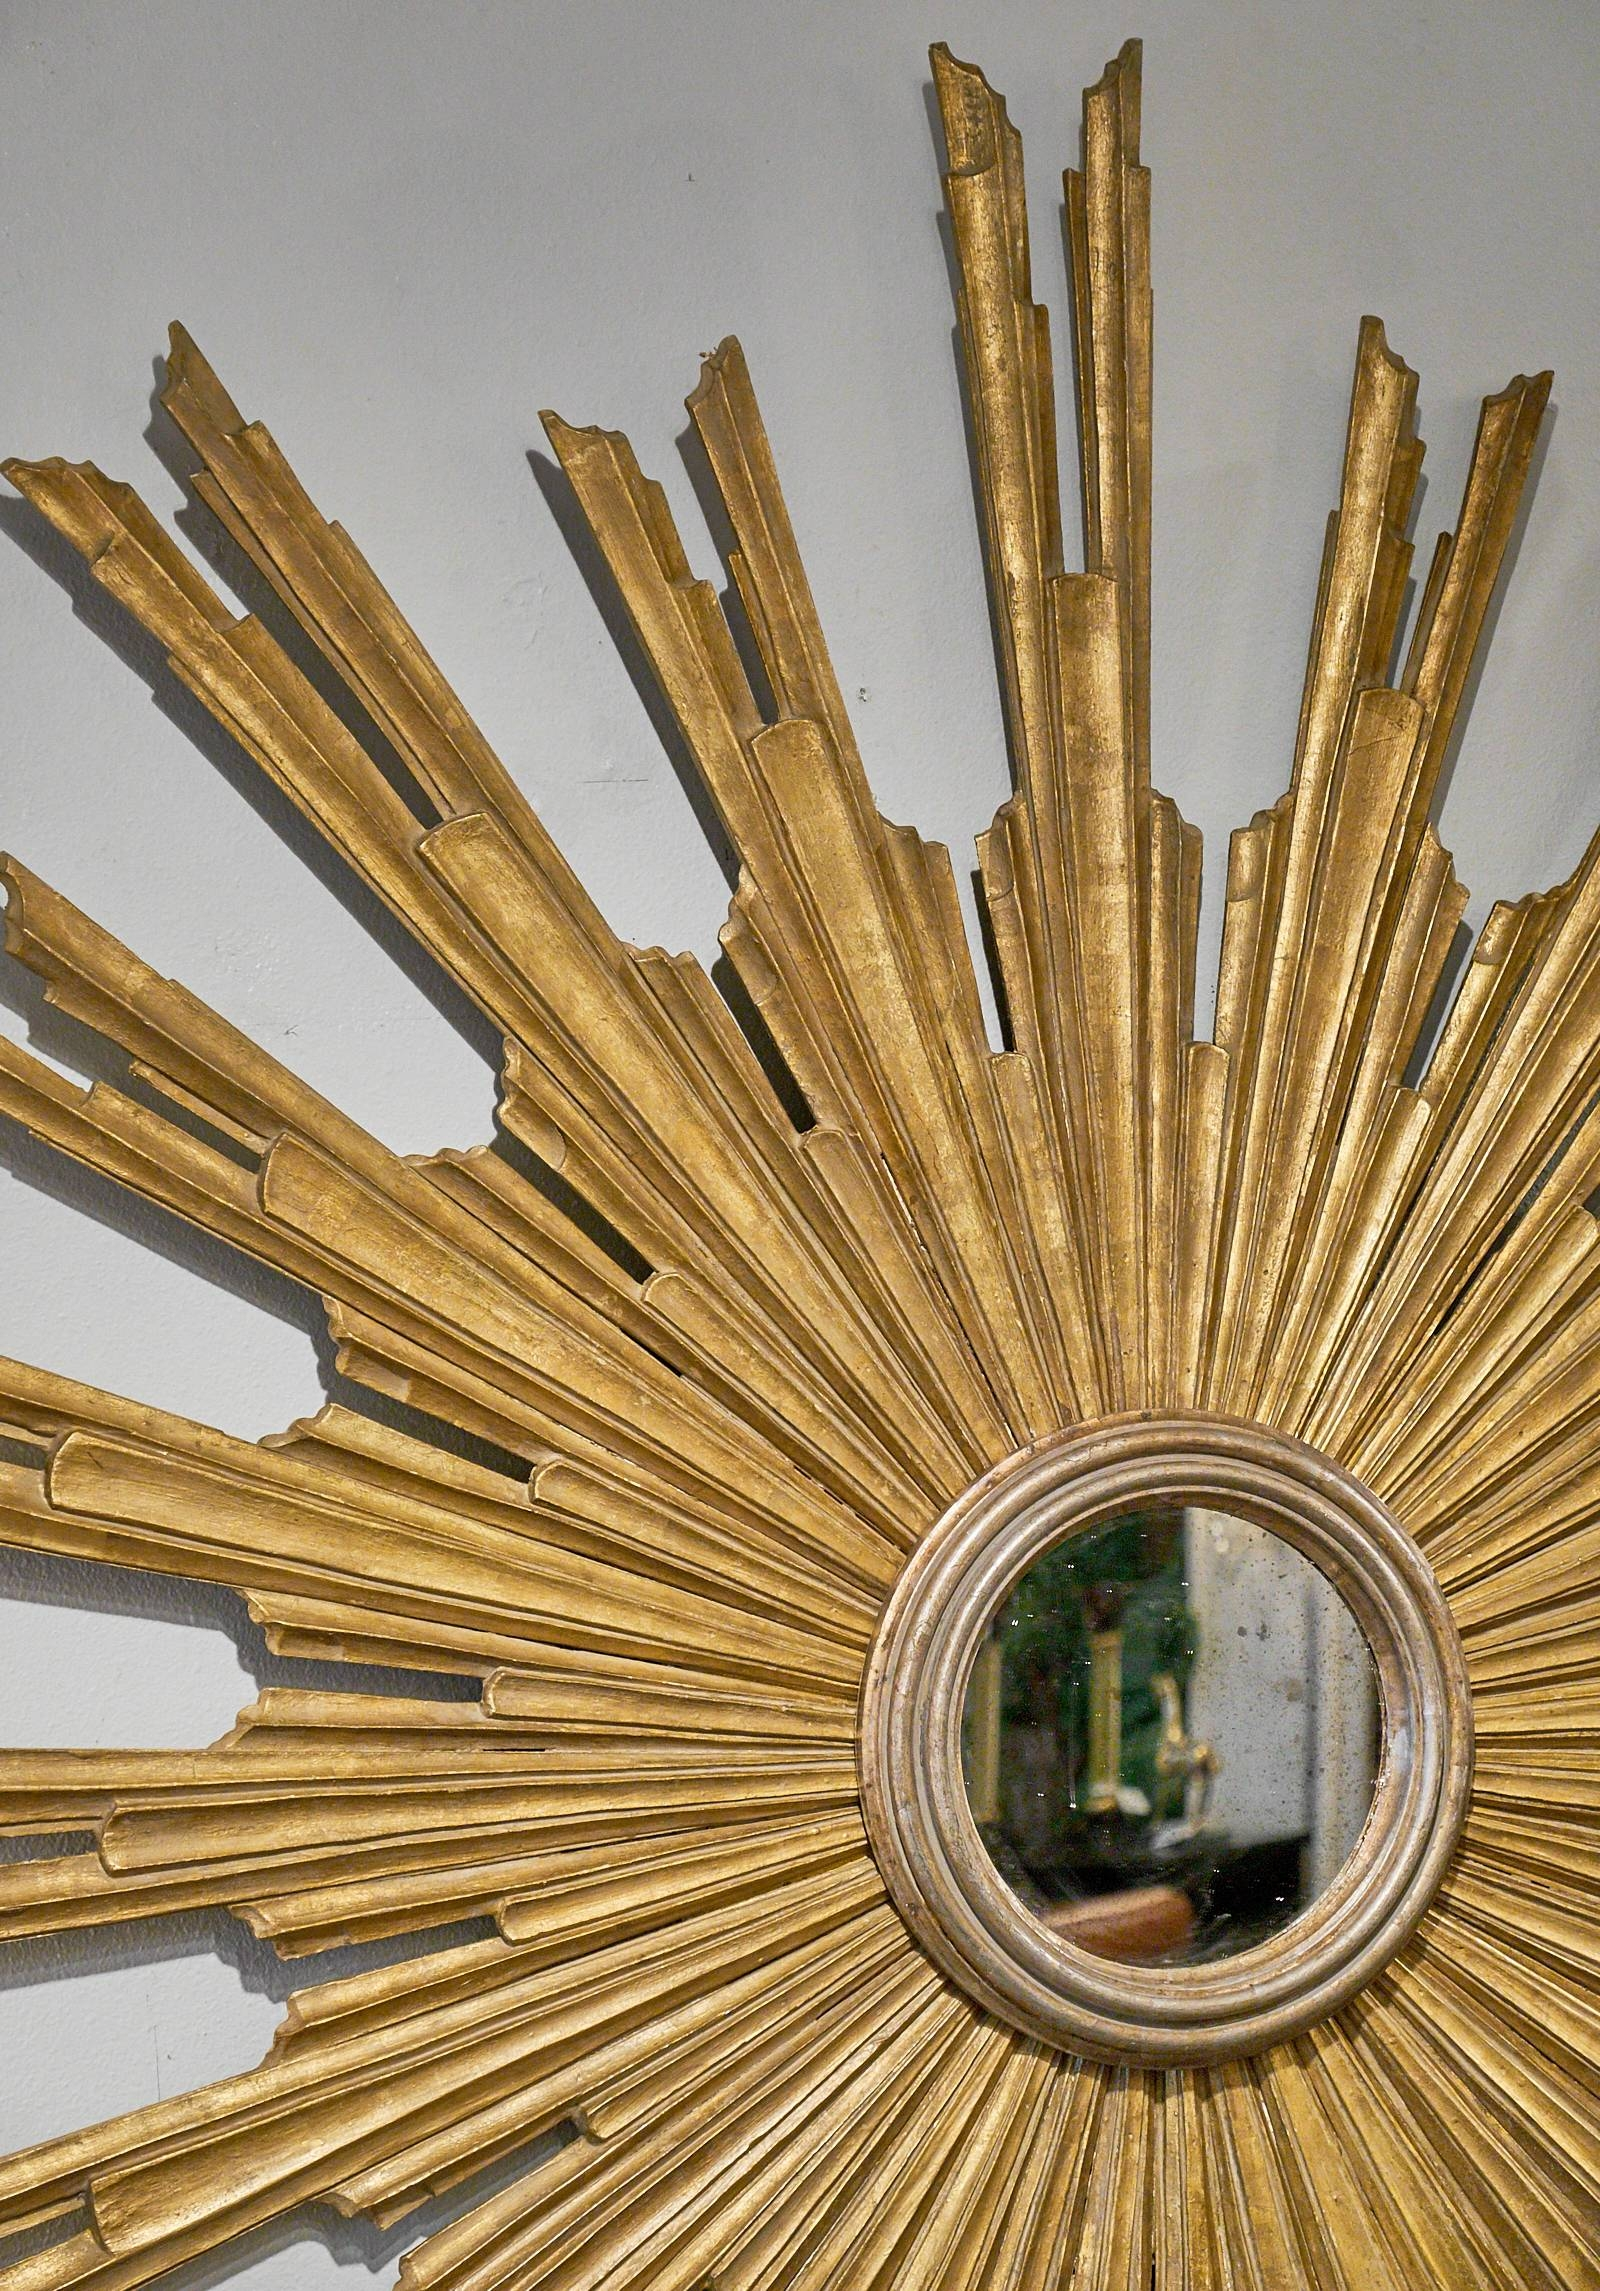 Very Large Antique Tuscan Sunburst Mirror - Jean Marc Fray within Large Sunburst Mirrors (Image 23 of 25)